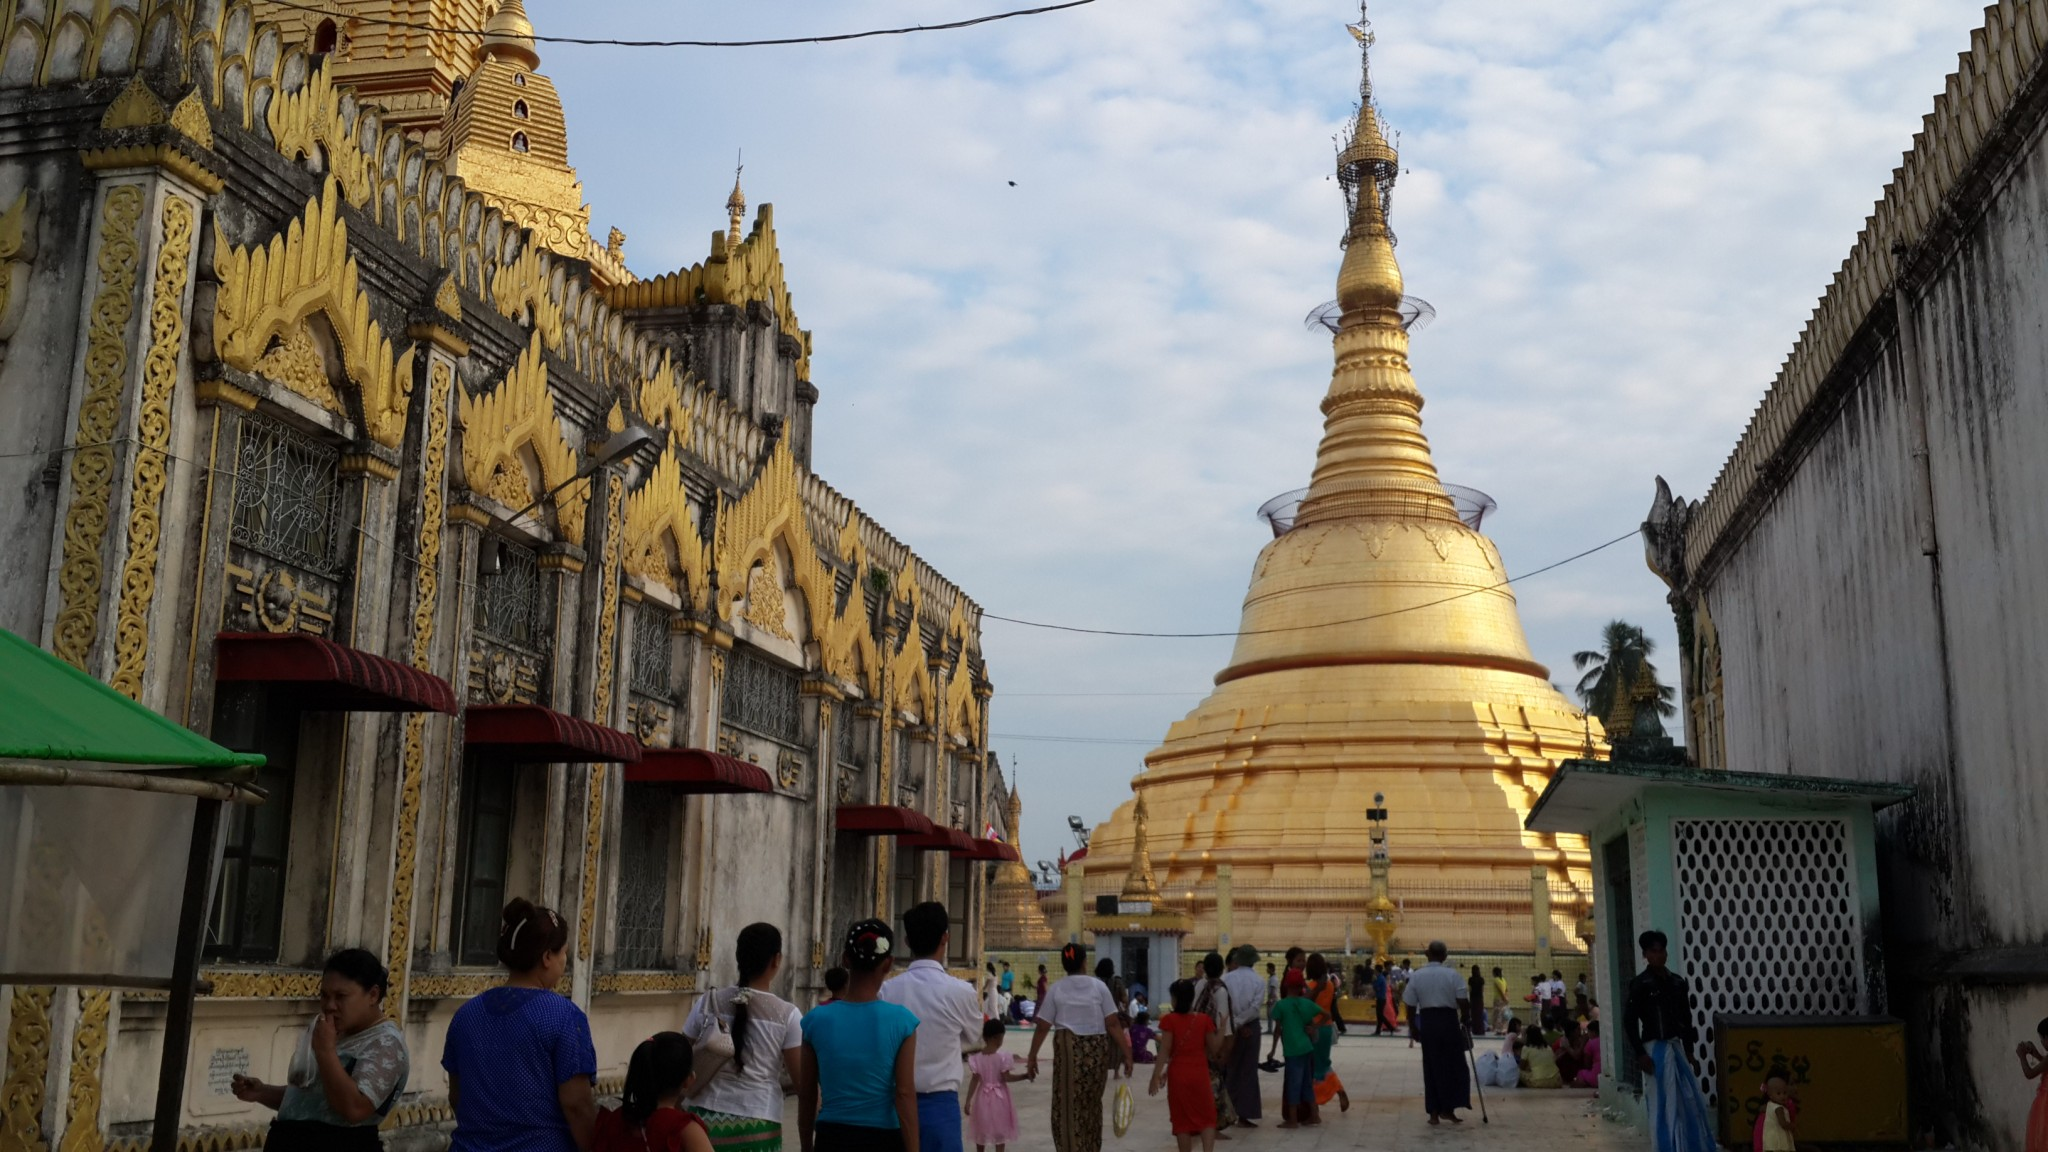 A golden Pagoda in Yangon.